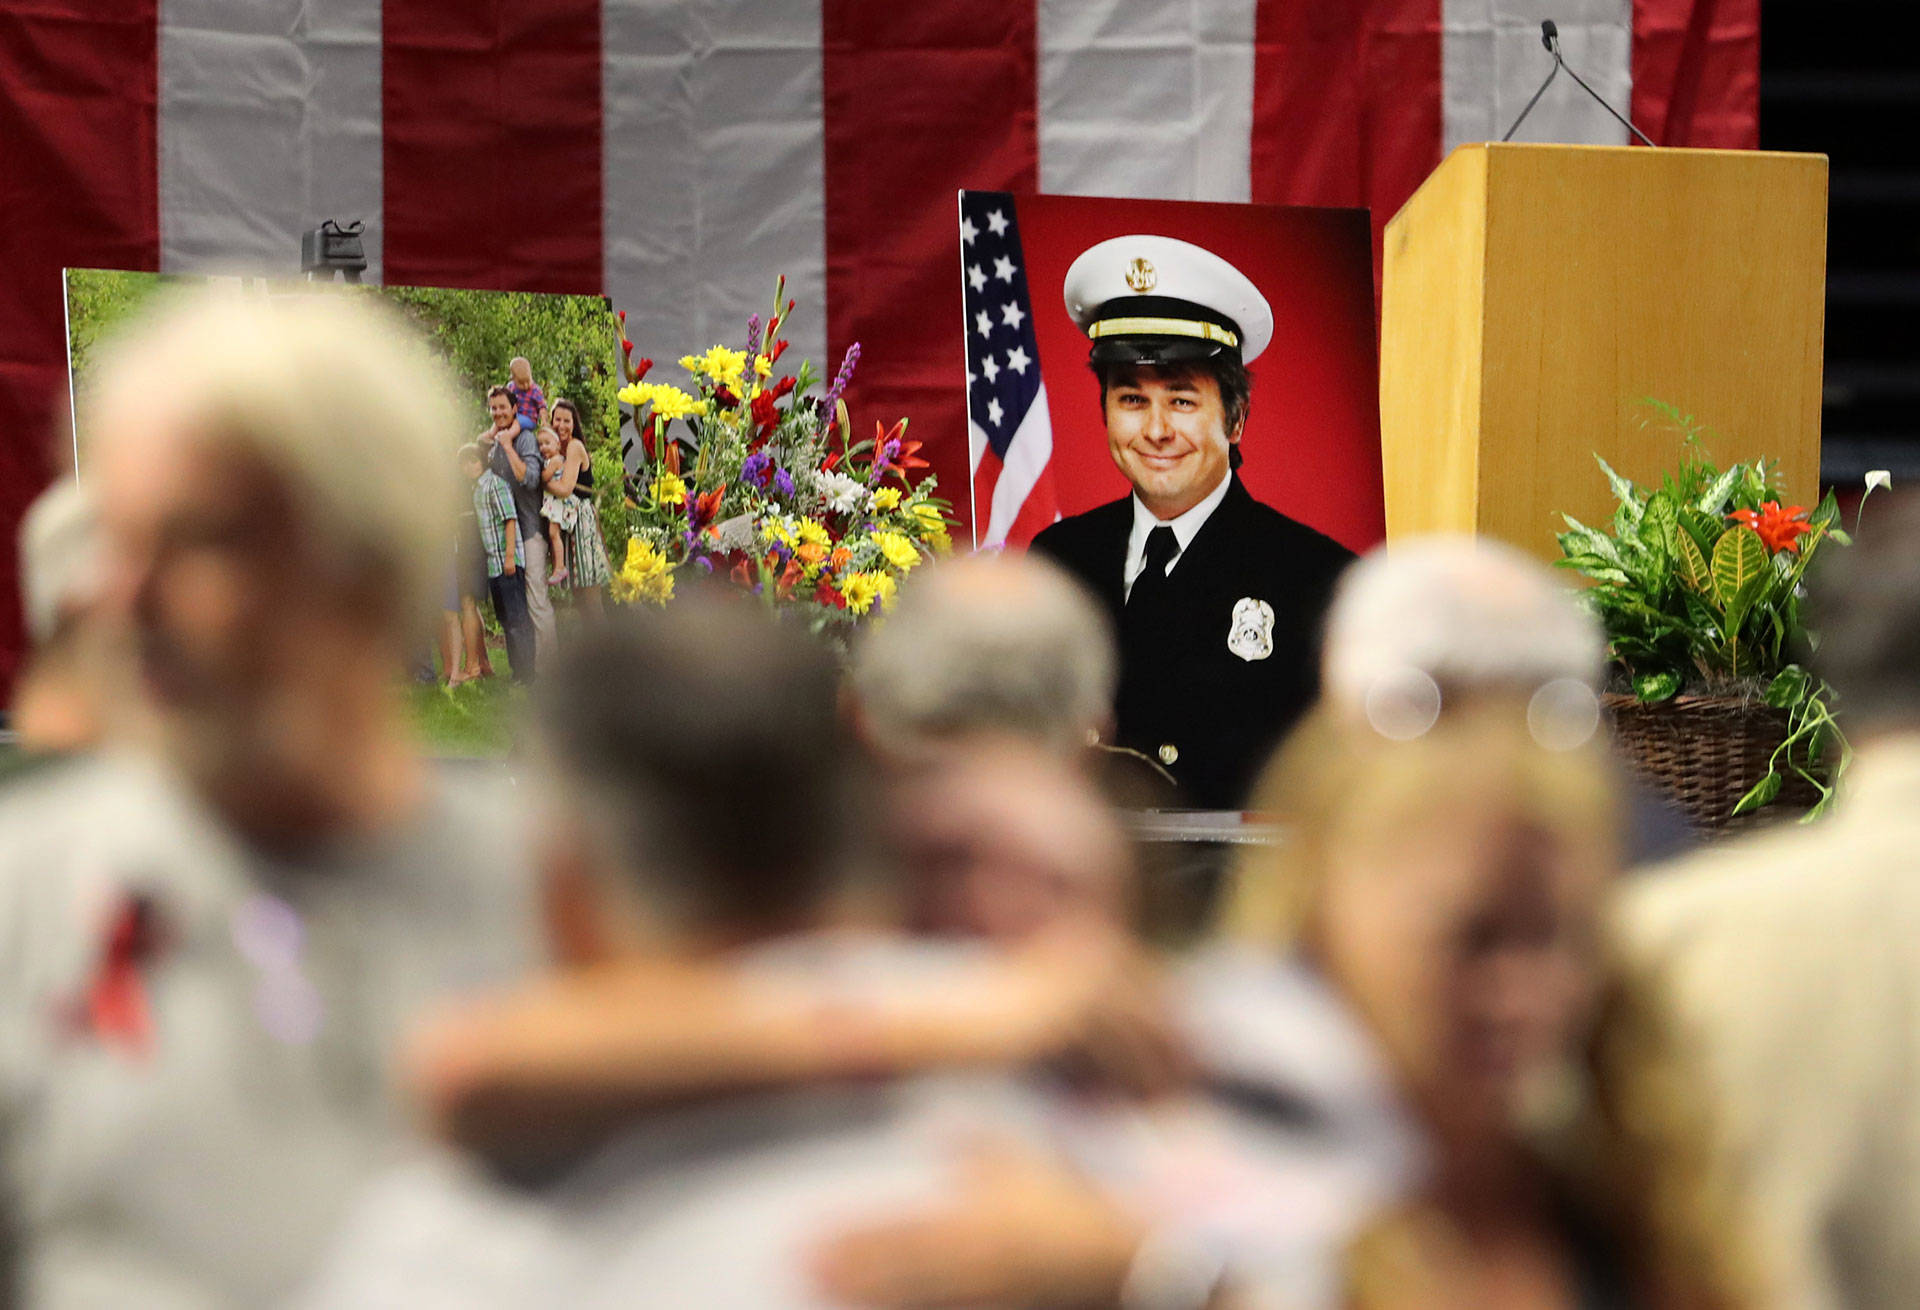 A picture of Battalion Chief Matthew David Burchett, killed battling the Mendocino Complex Fire, sits on stage as mourners embrace before his funeral on August 20 in West Valley City, Utah. George Frey/Getty Images